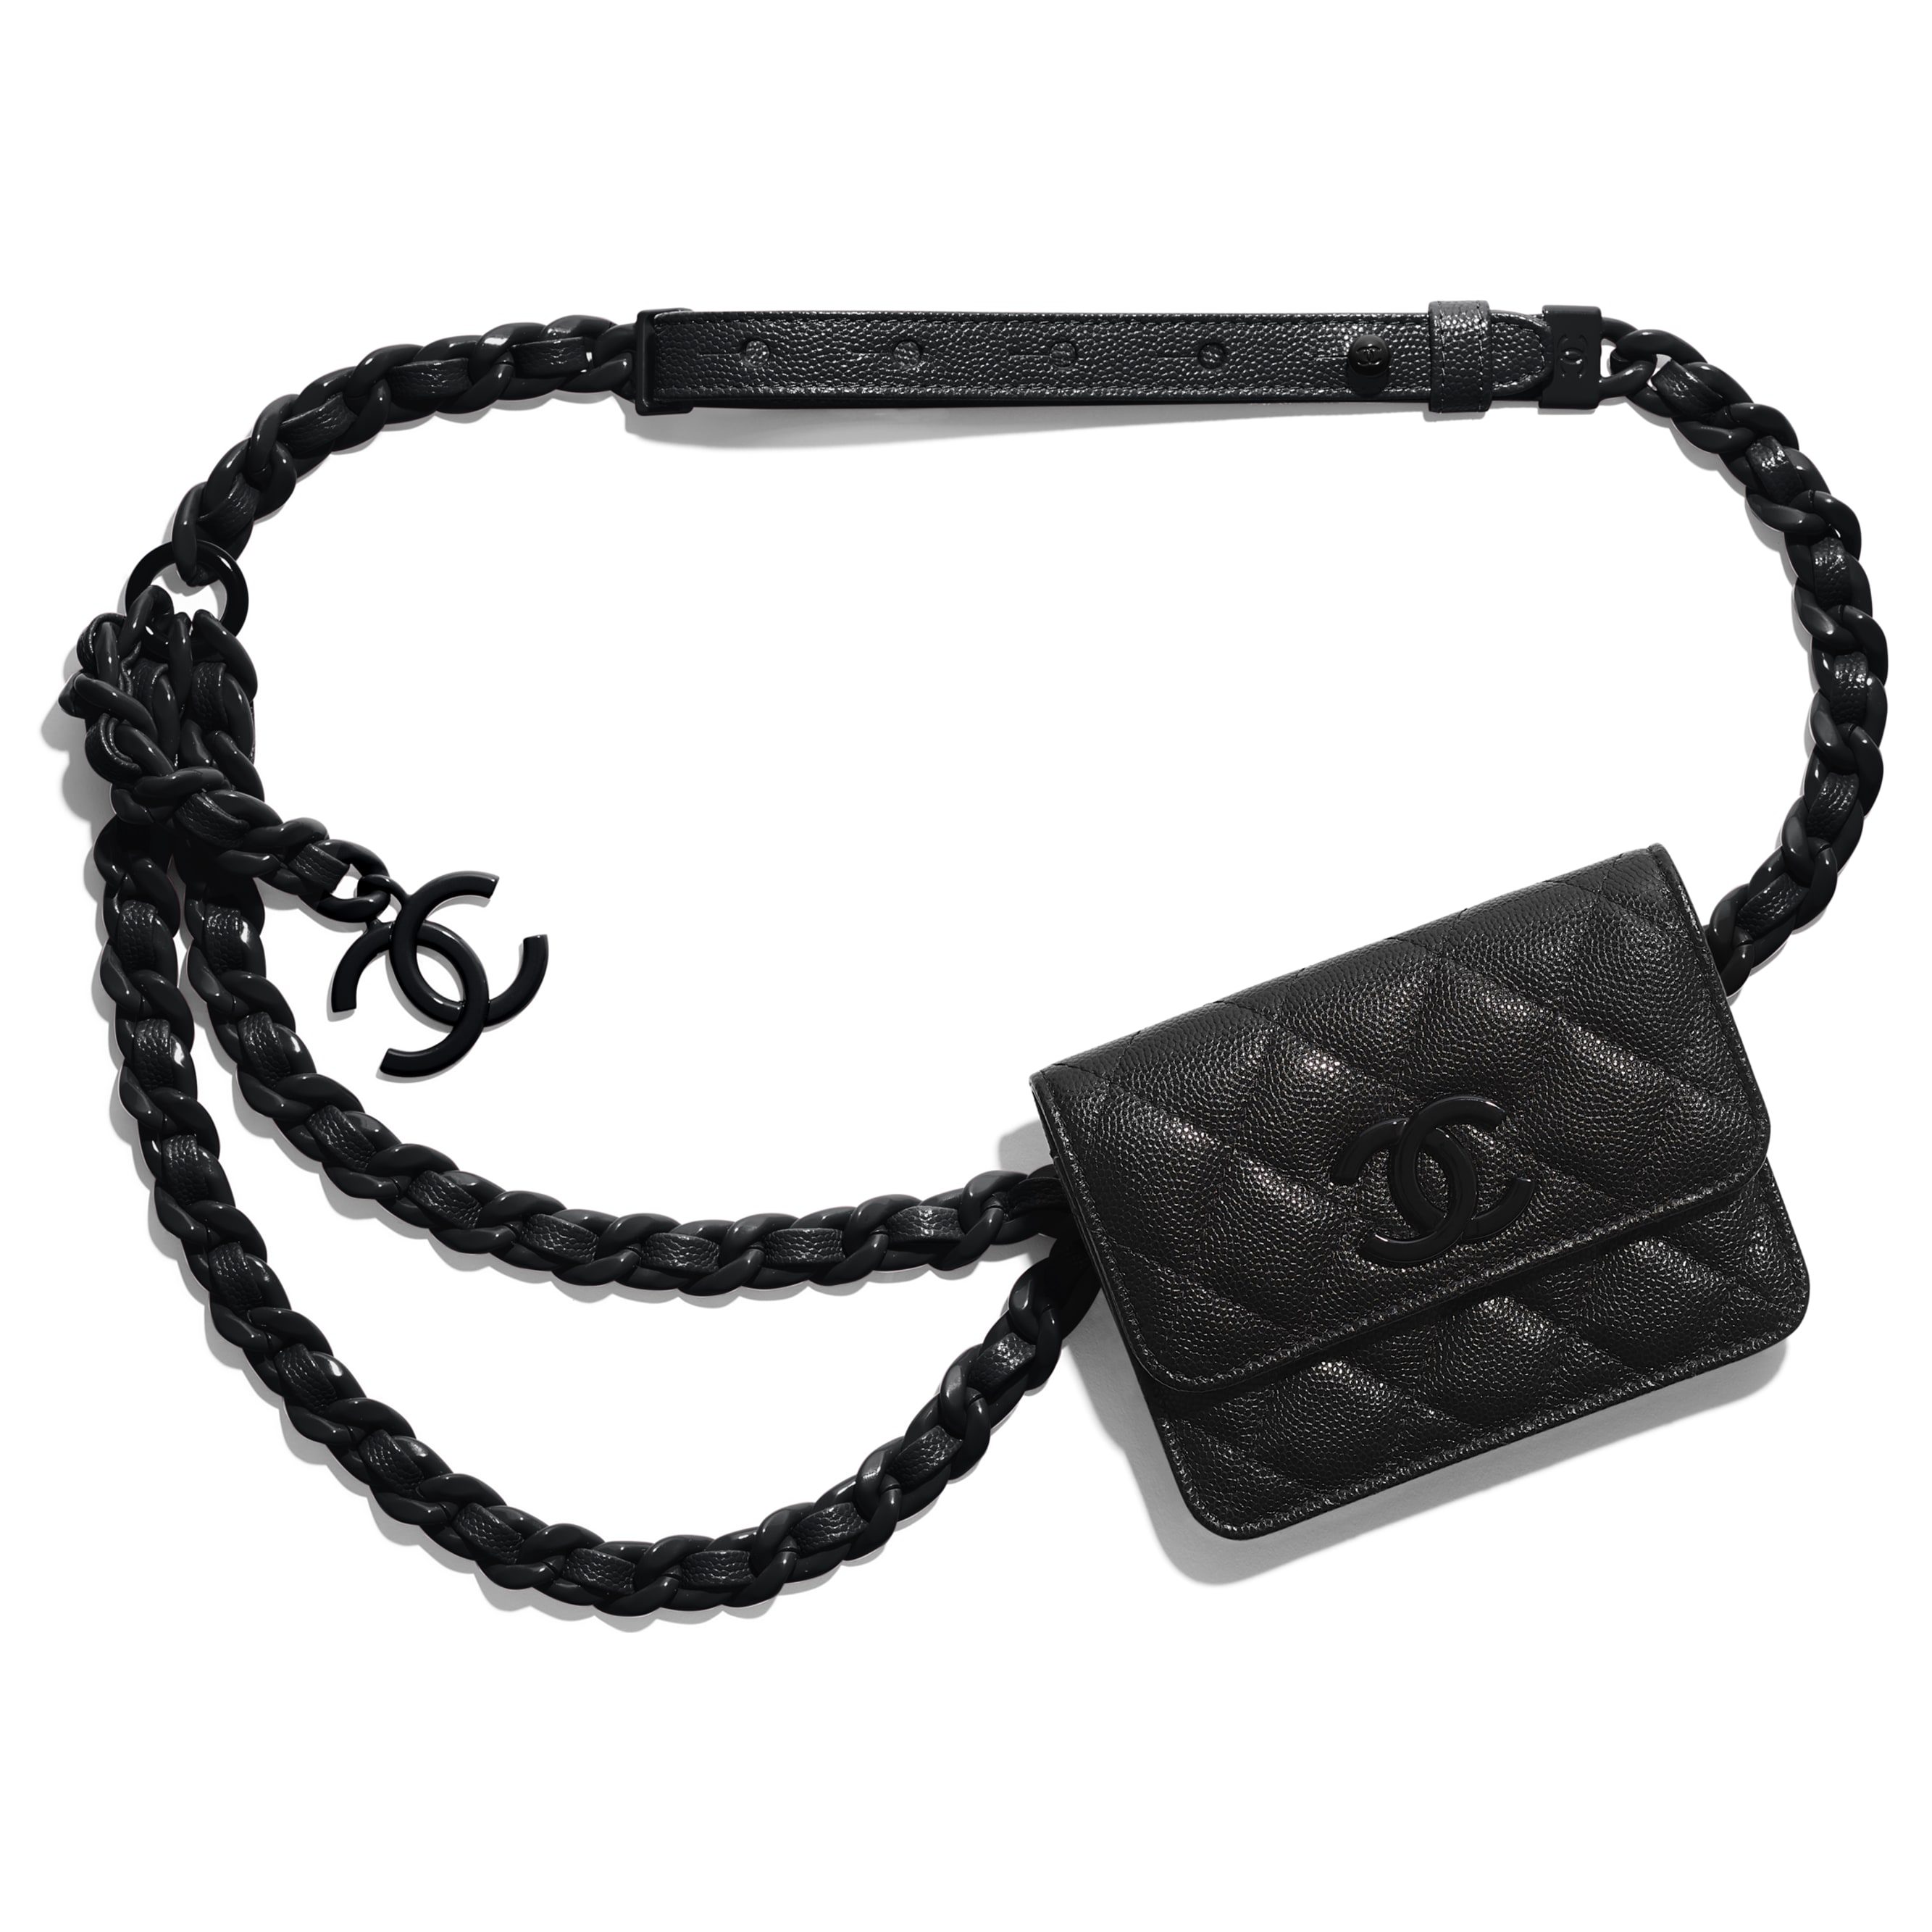 Belt Flap Card Holder - Black - Grained Calfskin & Lacquered Metal - CHANEL - Default view - see standard sized version